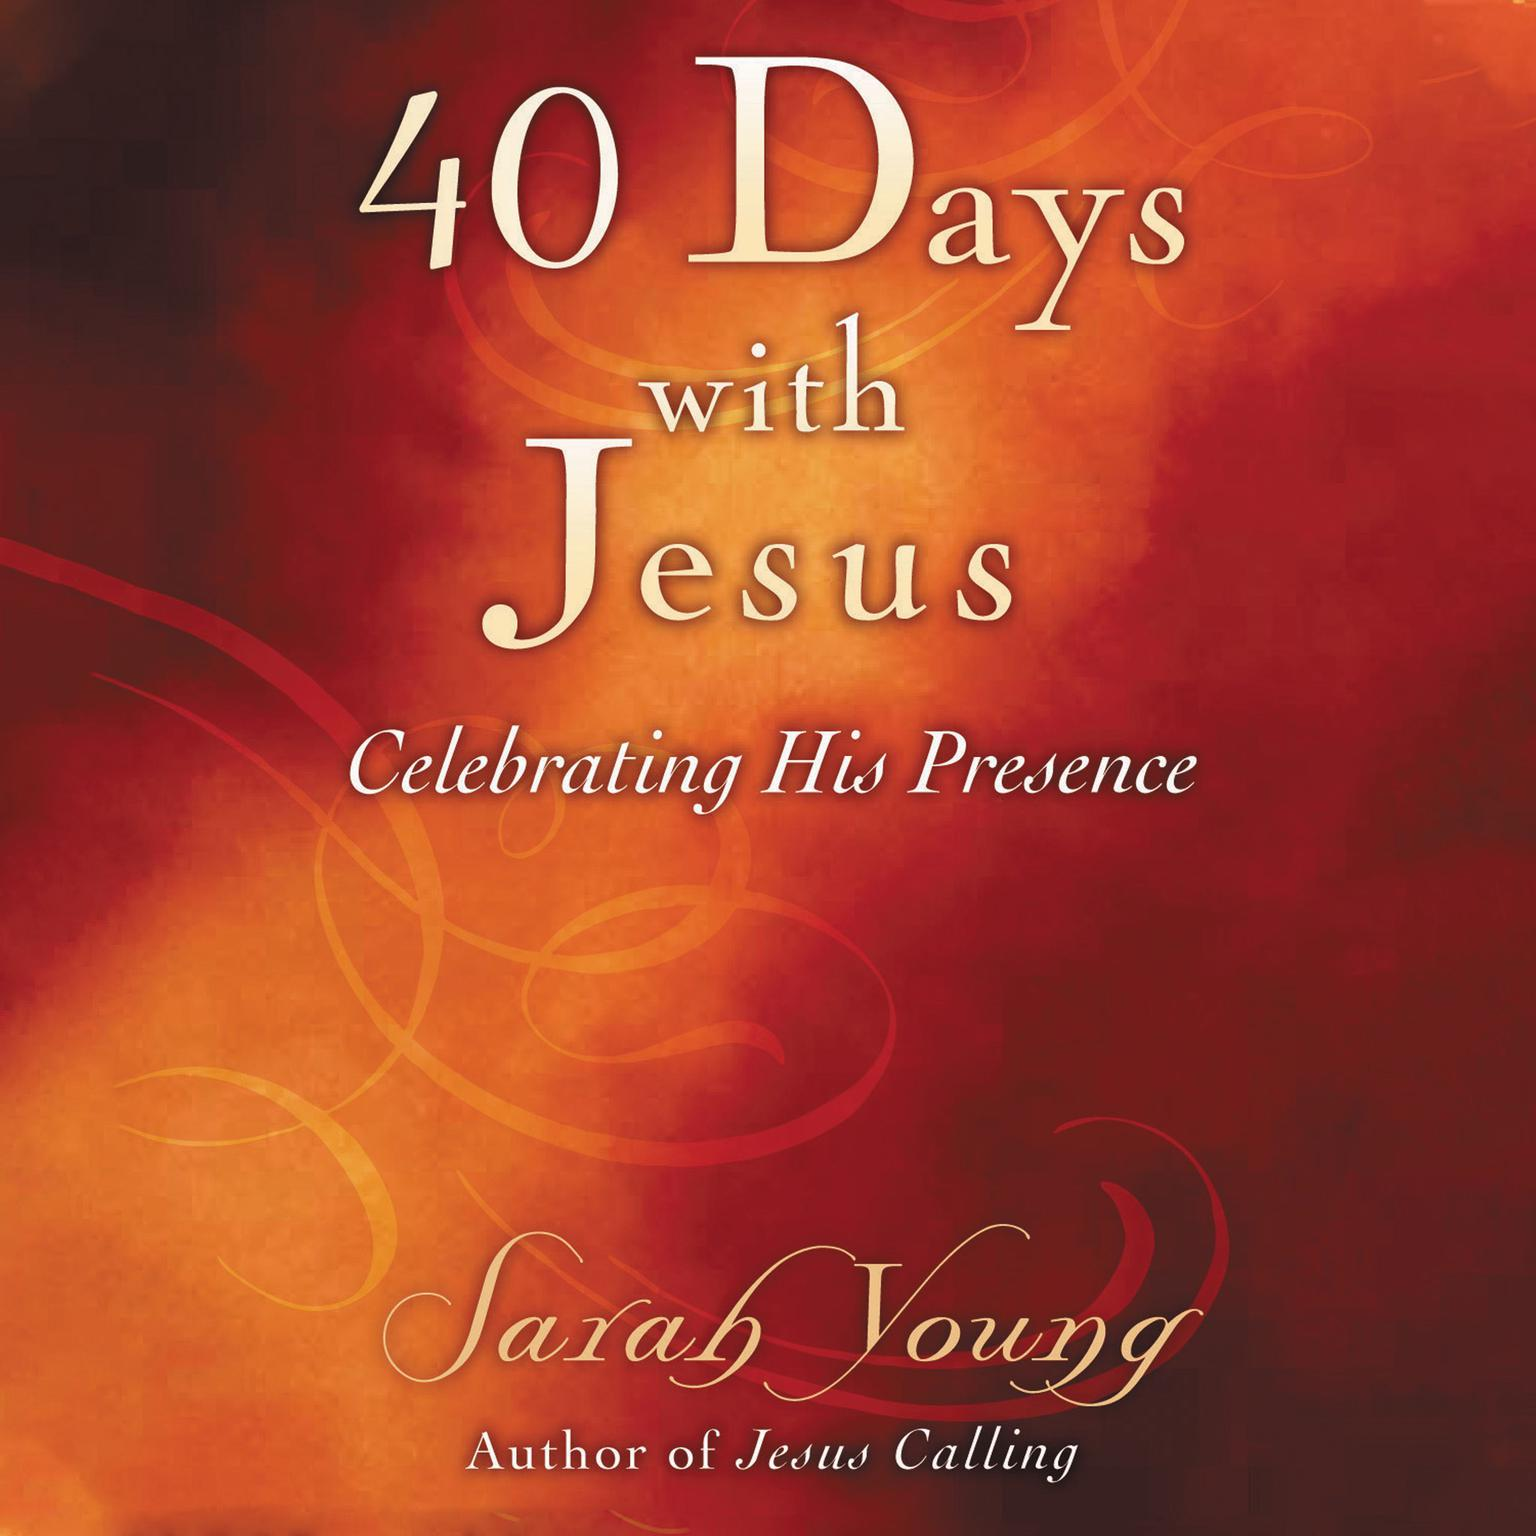 40 Days With Jesus: Celebrating His Presence Audiobook, by Sarah Young